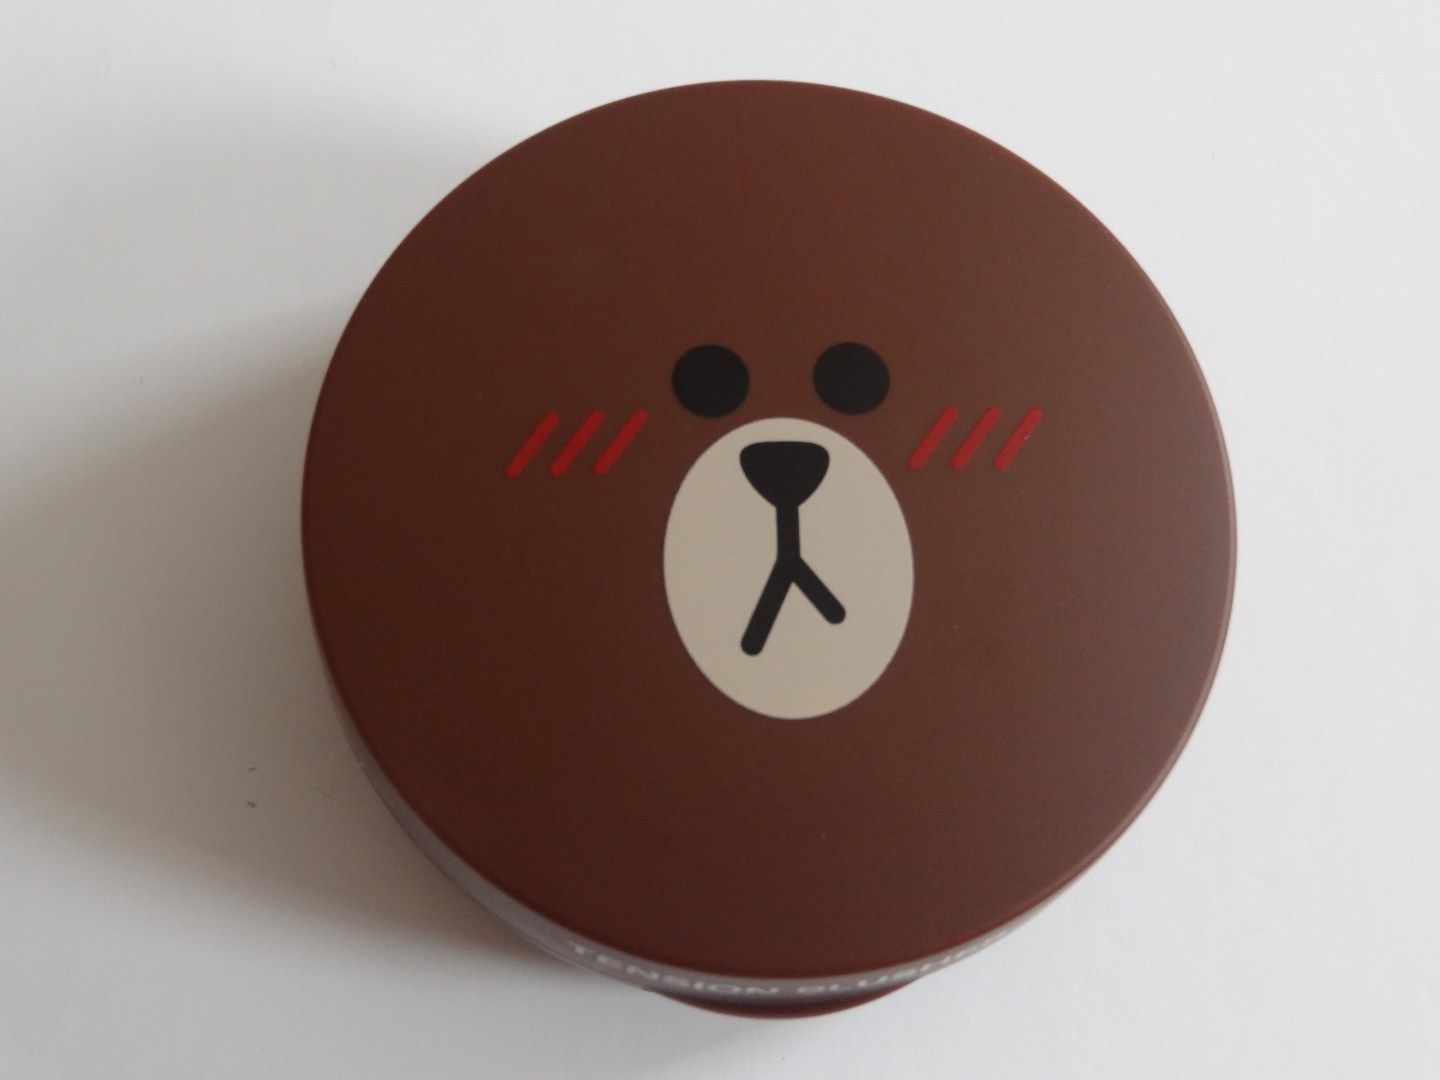 REVIEW: Missha x LINE Friends Tension Blusher (CR02 Rosy Dress)